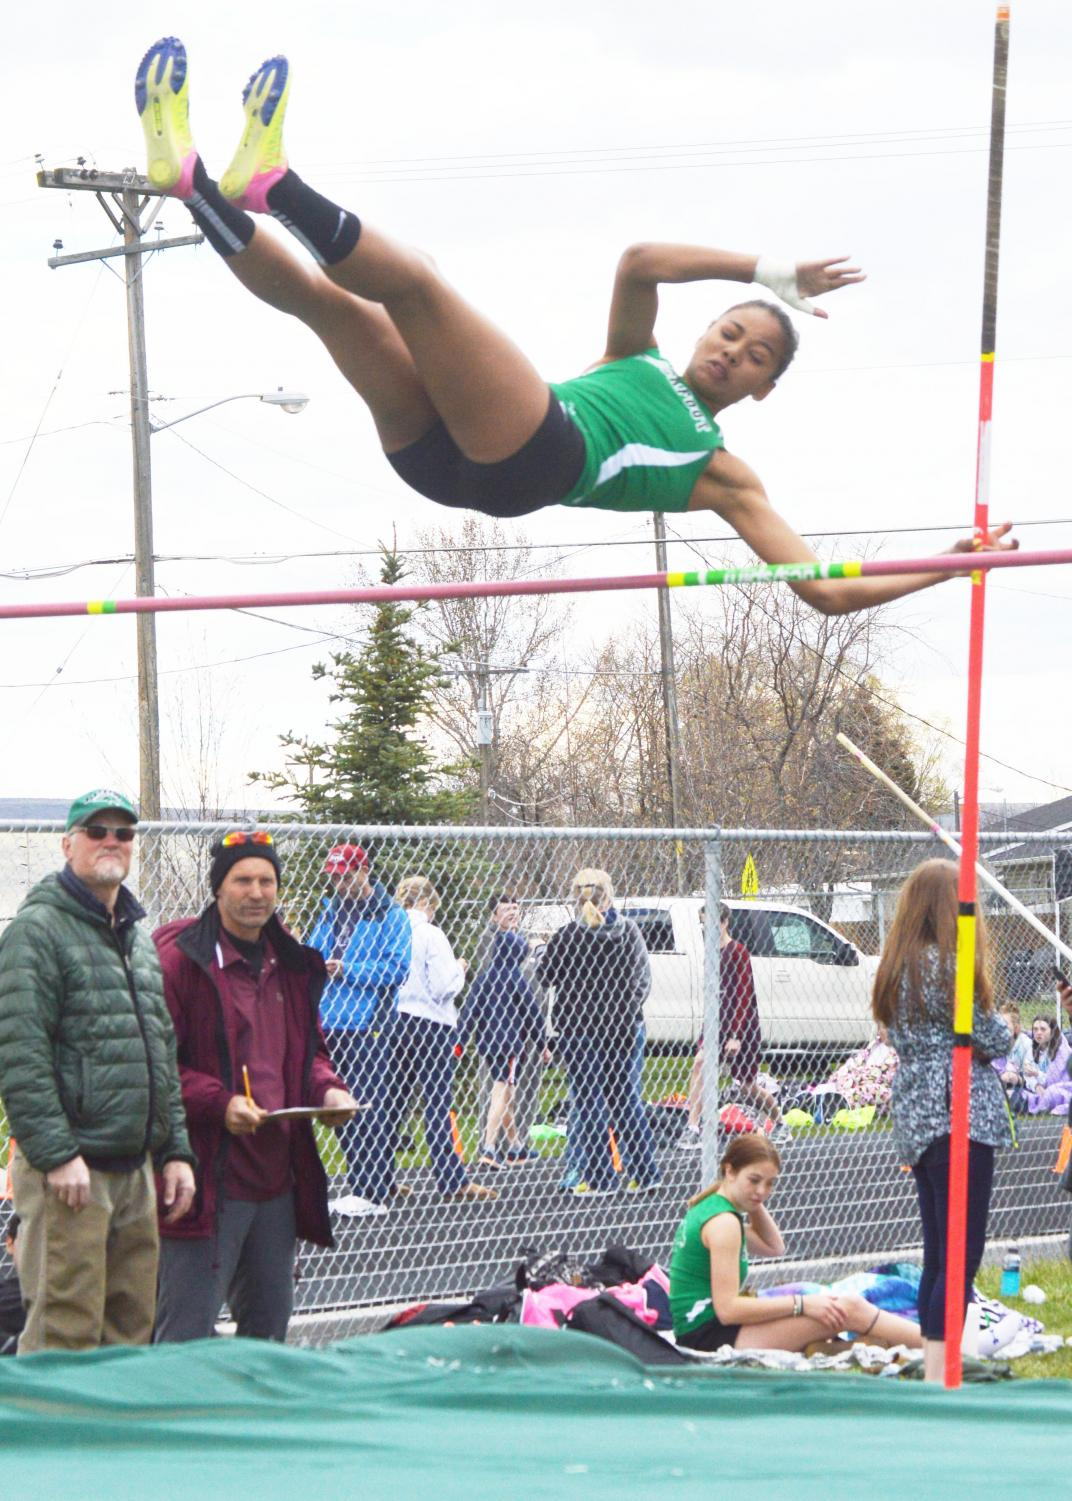 FLYING+HIGH.+Eboni+Beasley+%2810%29+clears+high+above+the+bar+in+pole+vault.